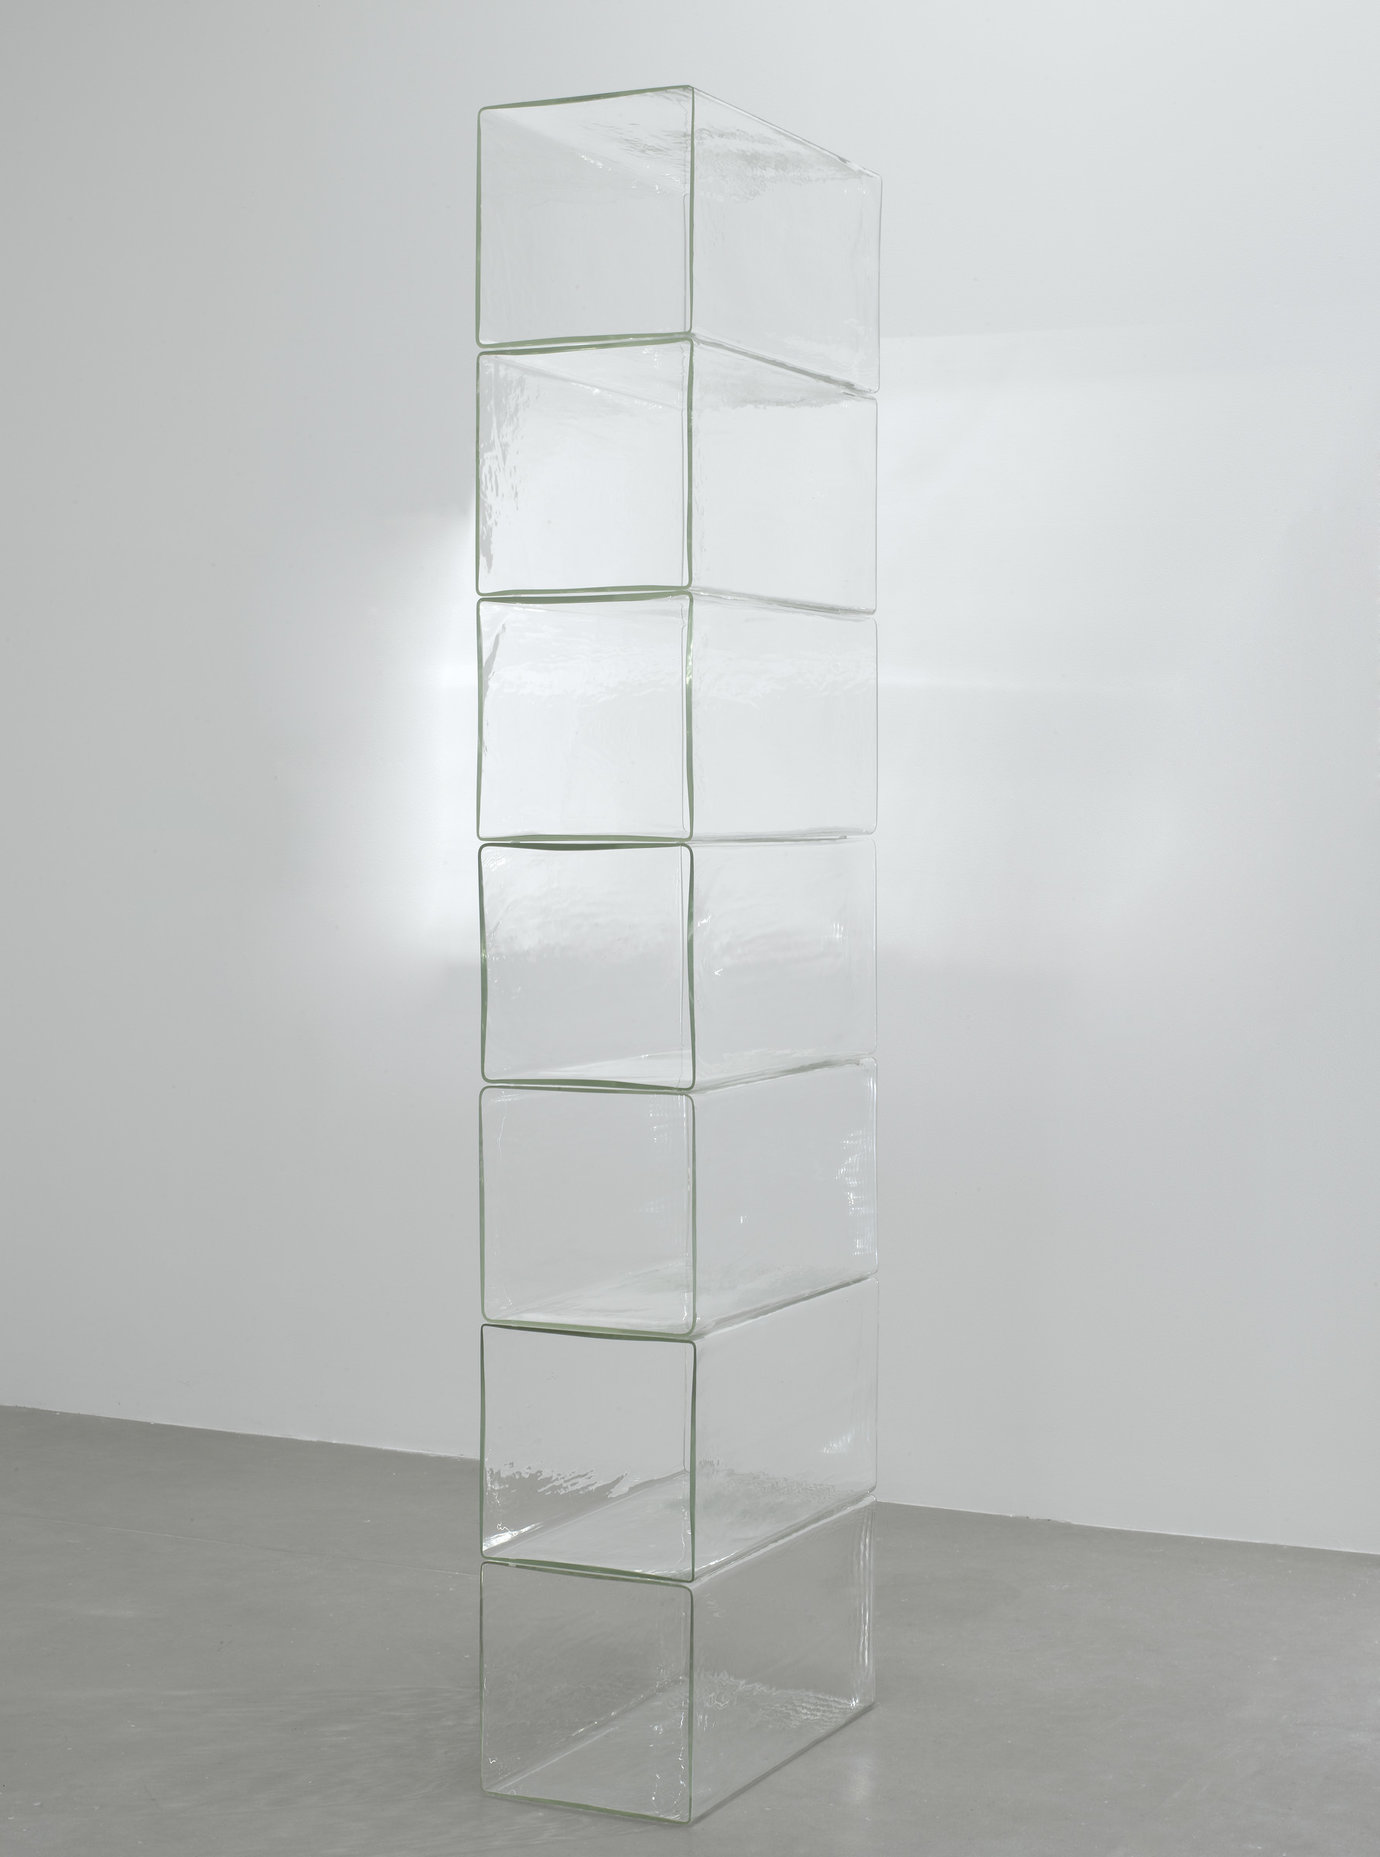 ", 2009. borosilicate glass, 86-1/2"" x 12-1/4"" x 23-3/4"" (219.7 cm x 31.1 cm x 60.3 cm),7 borosilicate glass elements, stacked, overall."